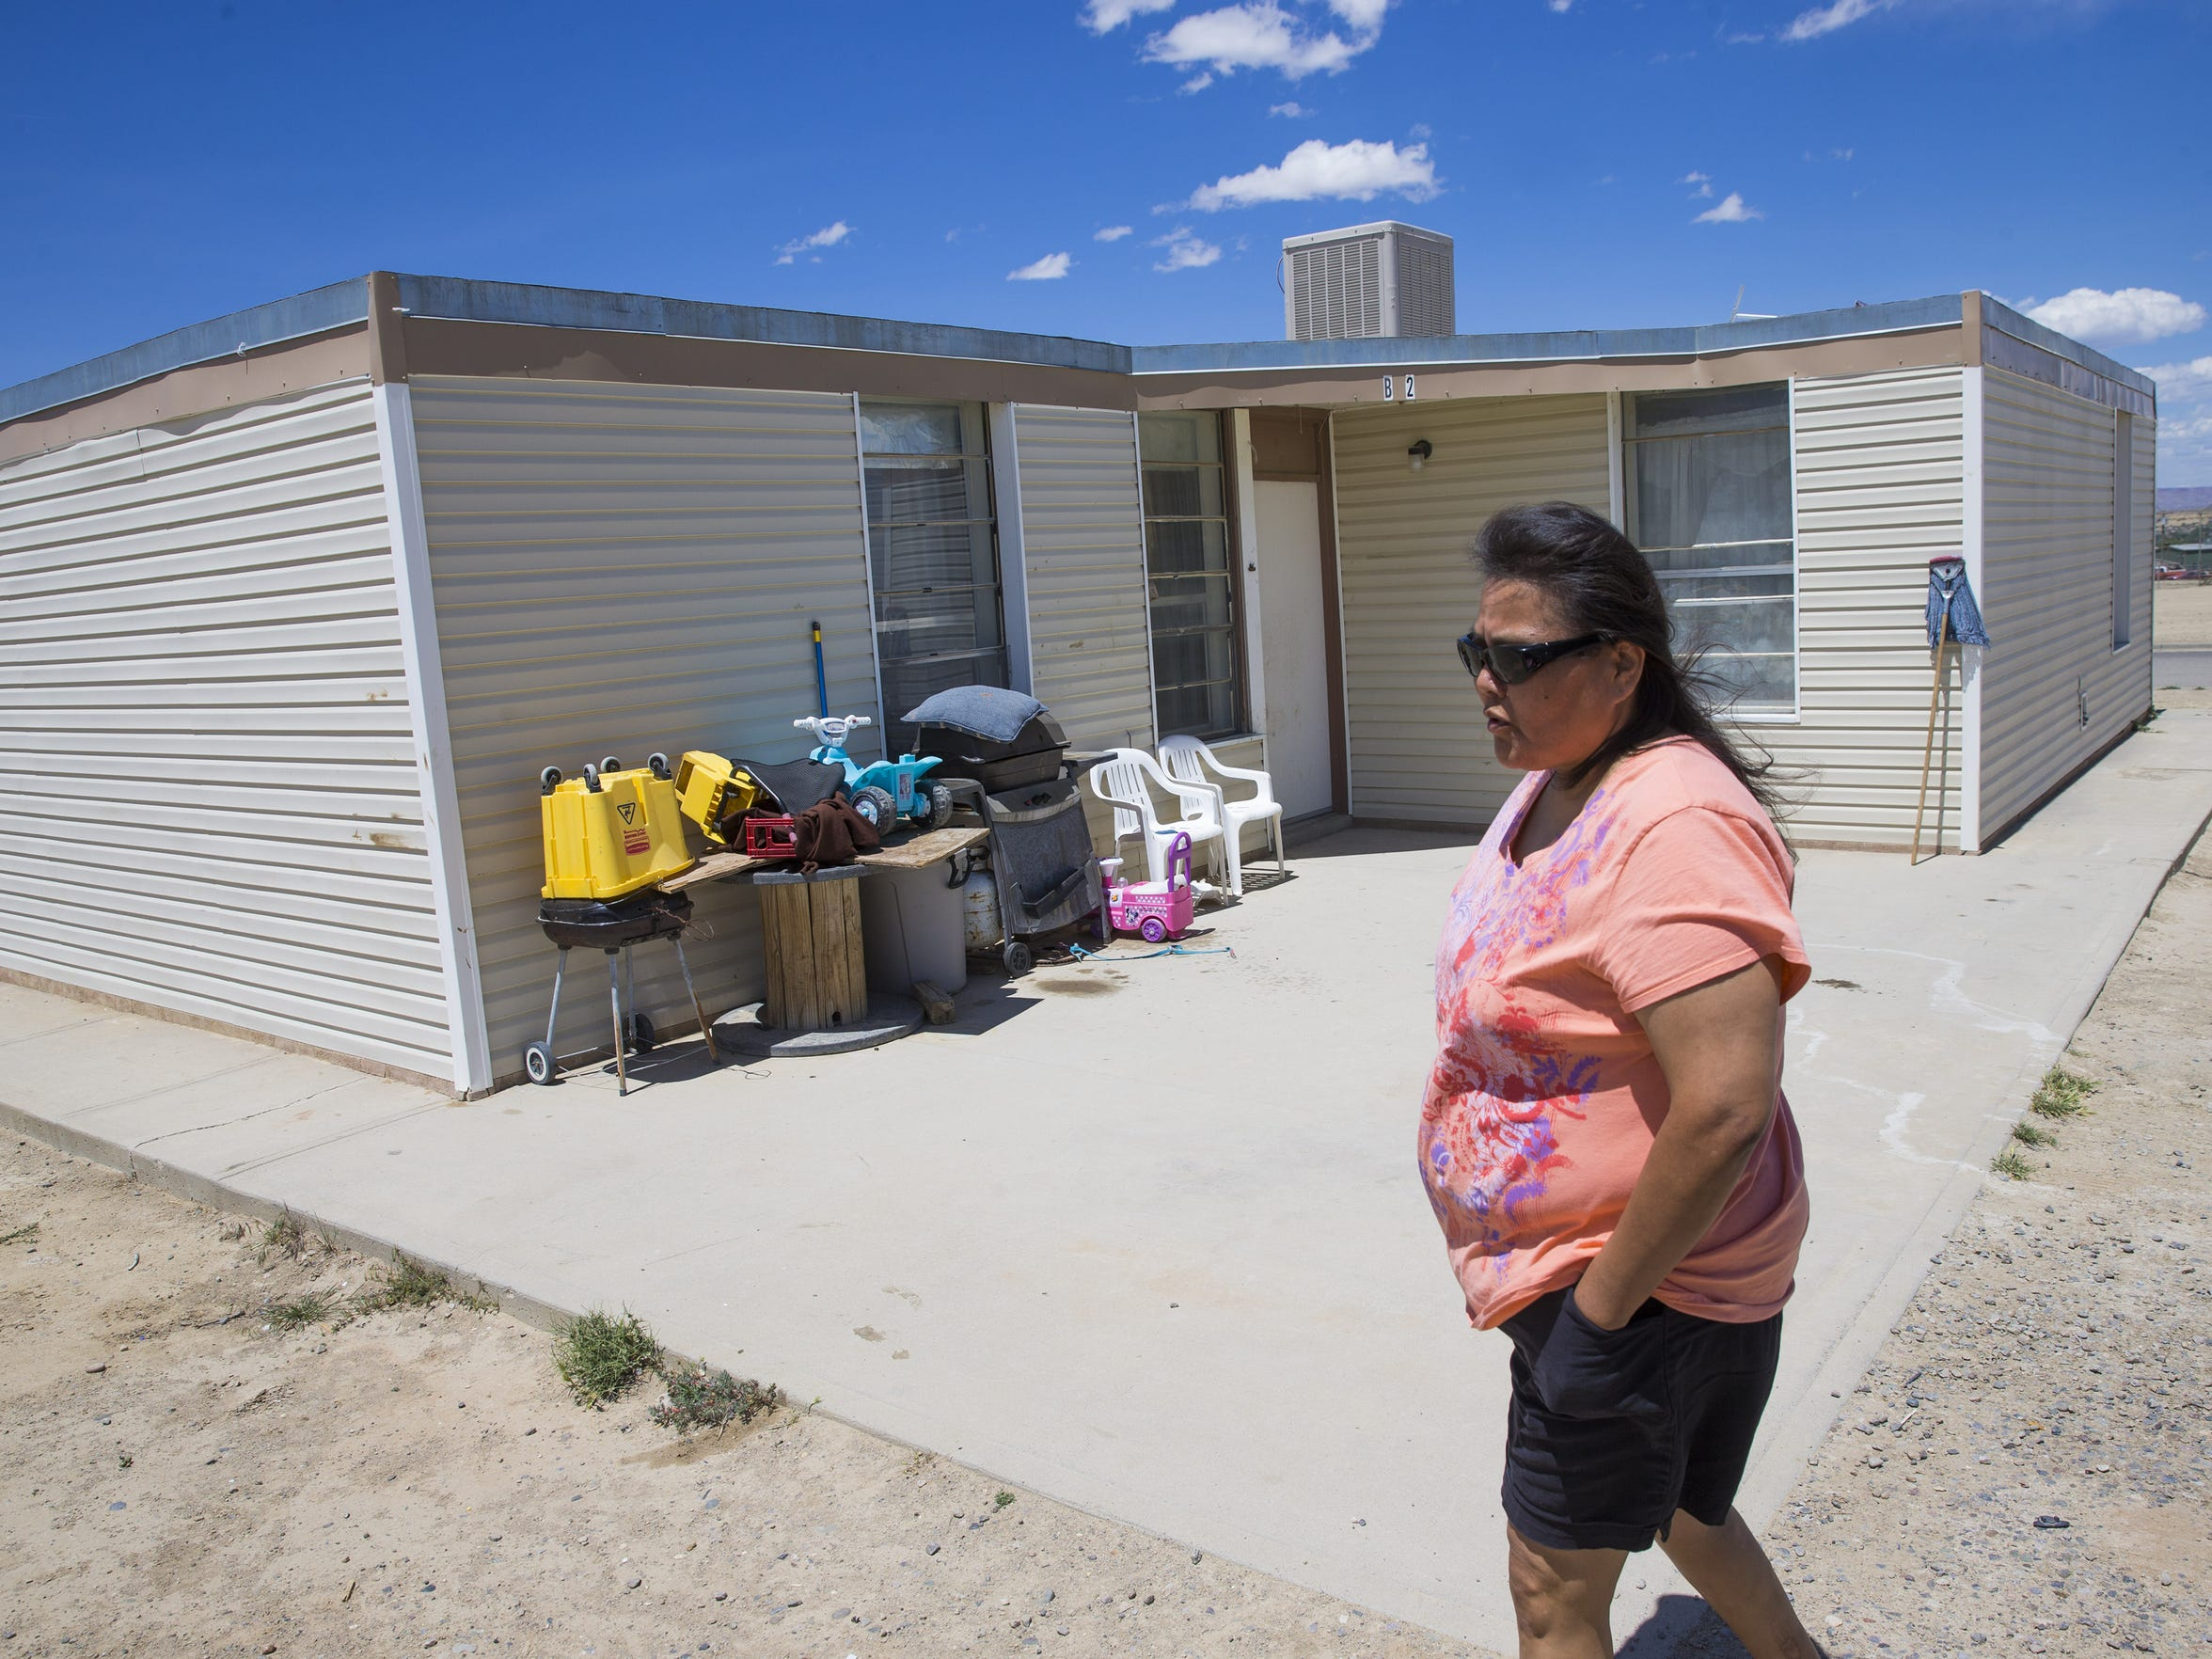 Carletta Begay's three-bedroom home in South Shiprock, N.M., is too small for her family of six.